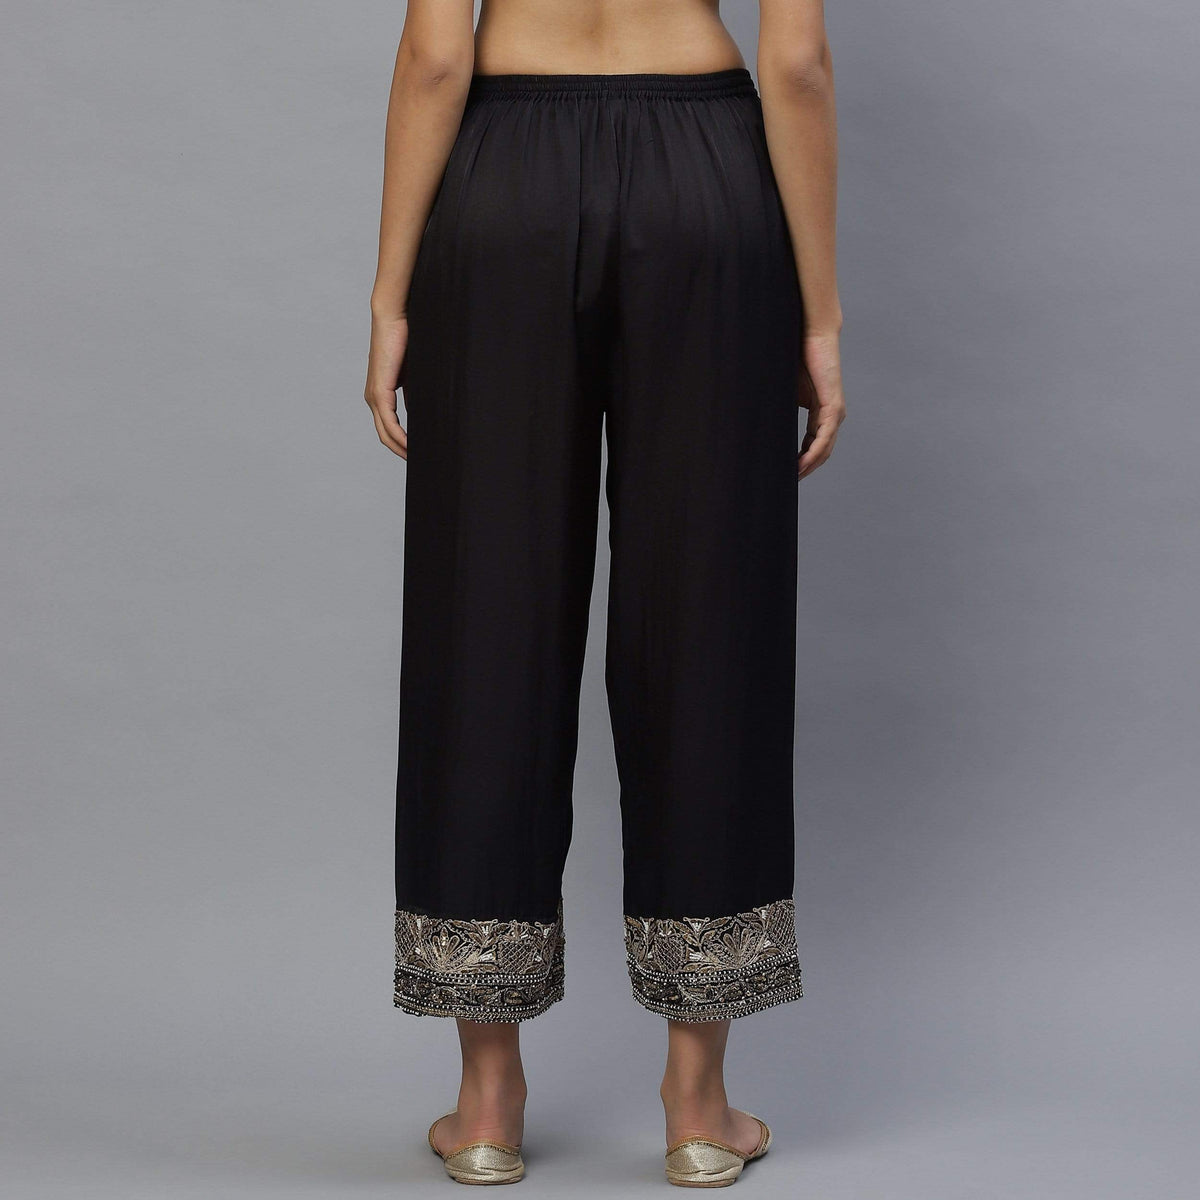 Shades of India Bottoms Black cotton silk pyjama